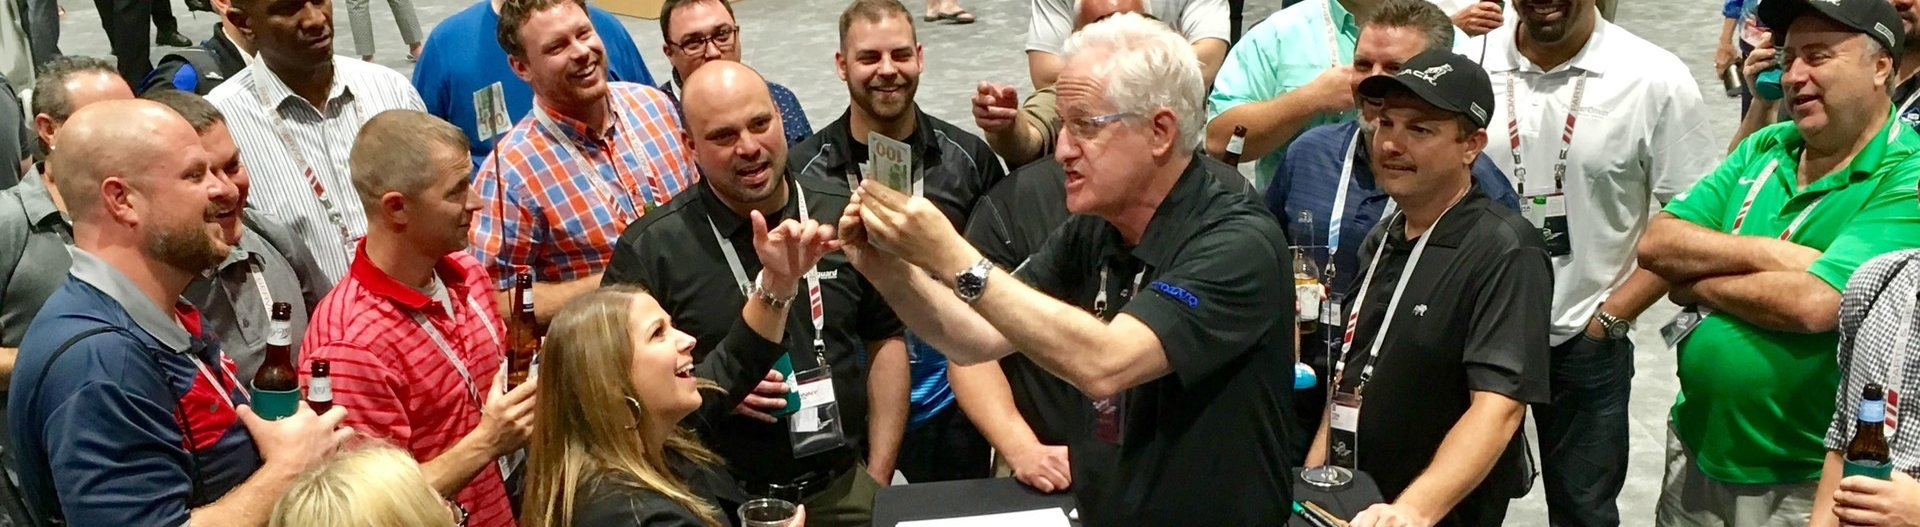 Crowds pack around Corporate Magic at the trade show